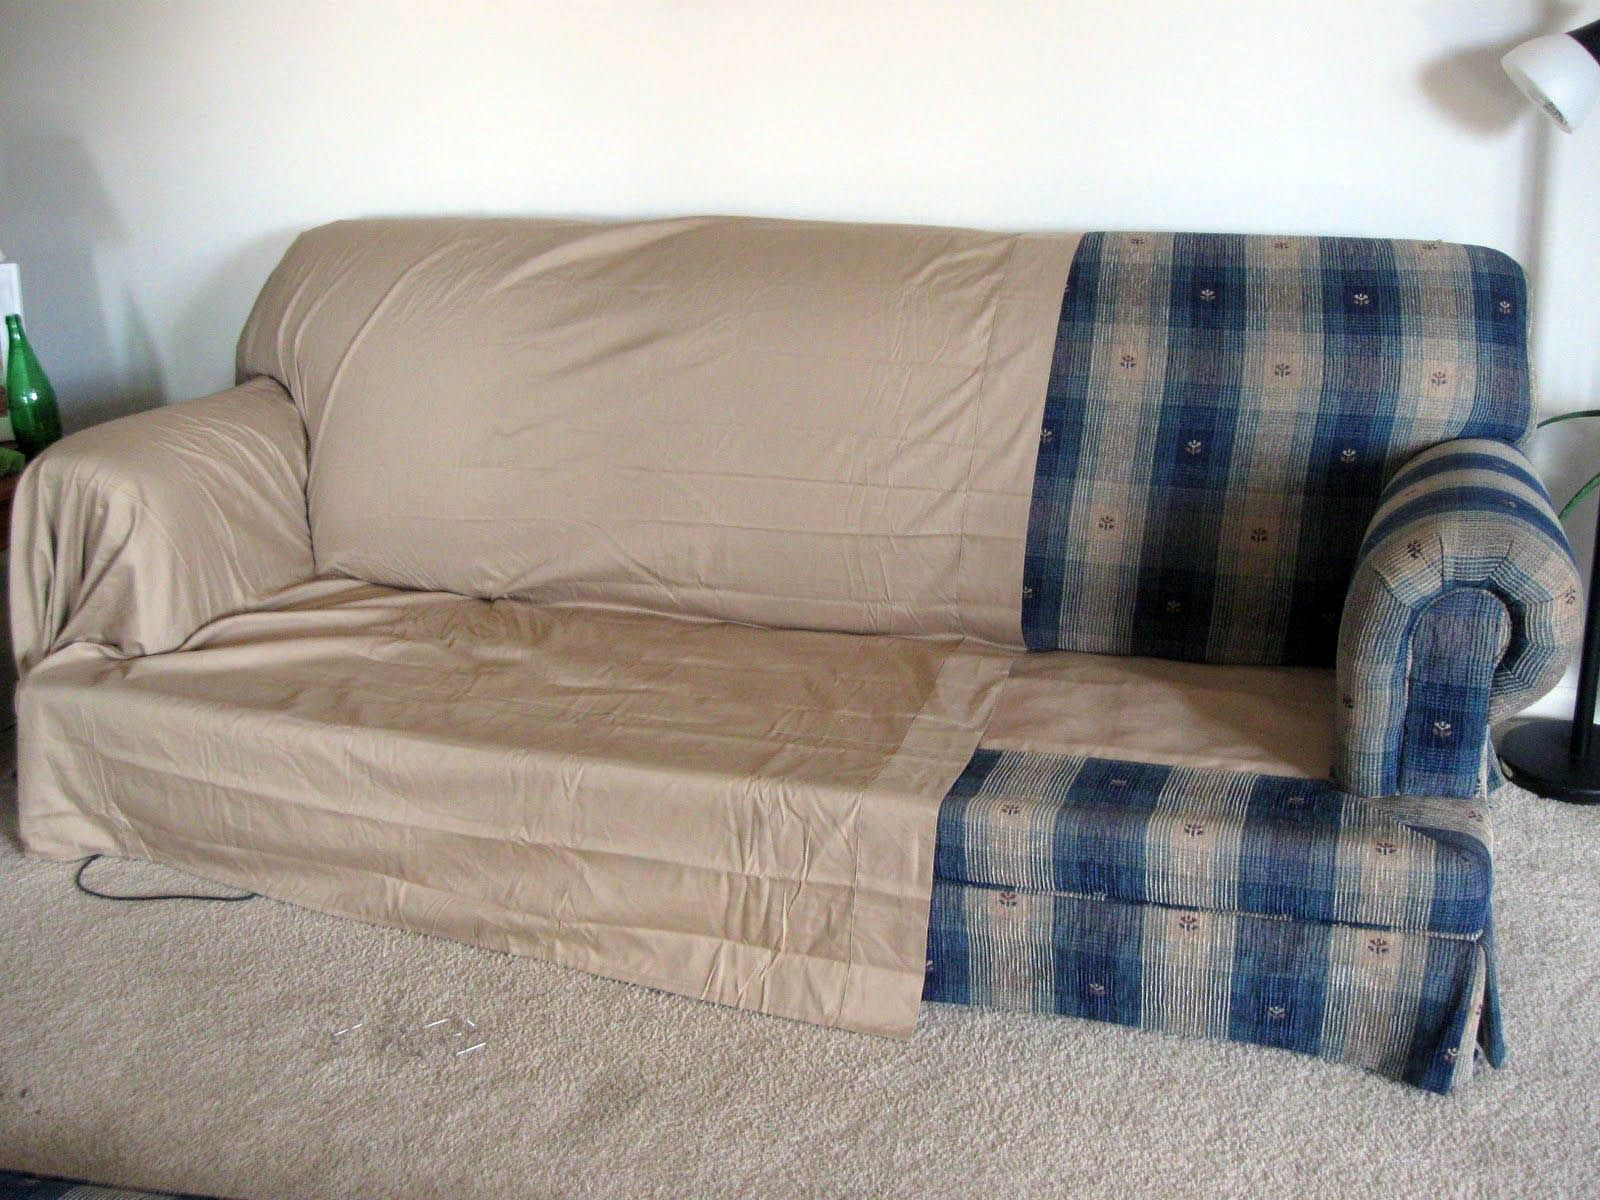 Fashionable Couch Covers Reviews That Will Impress You Diy Couch Cover Diy Couch Diy Sofa Cover